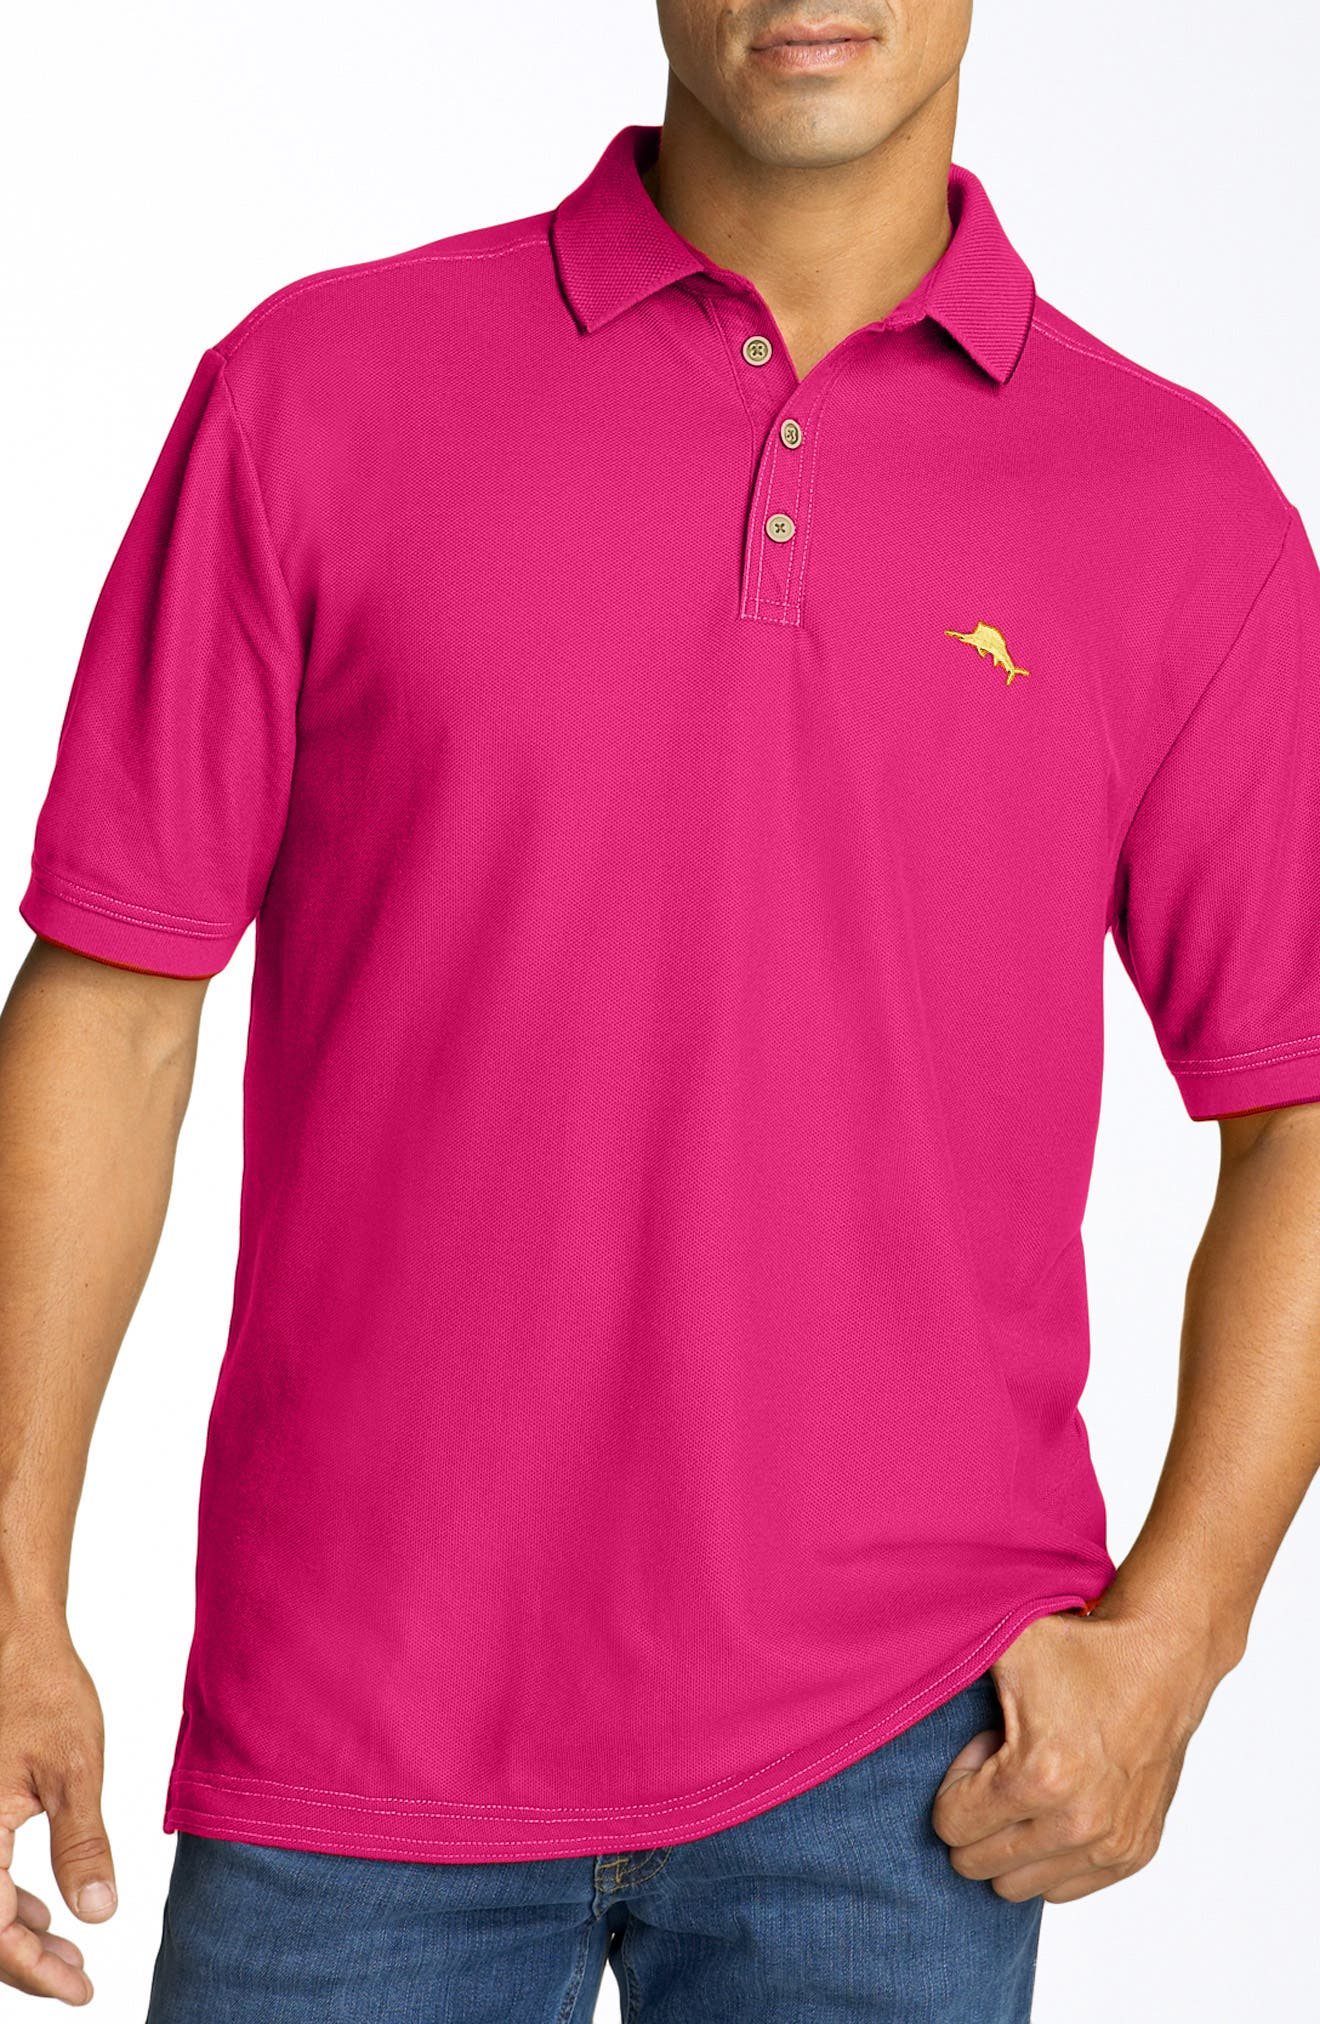 Main Image - Tommy Bahama 'The Emfielder' Piqué Polo (Big & Tall)